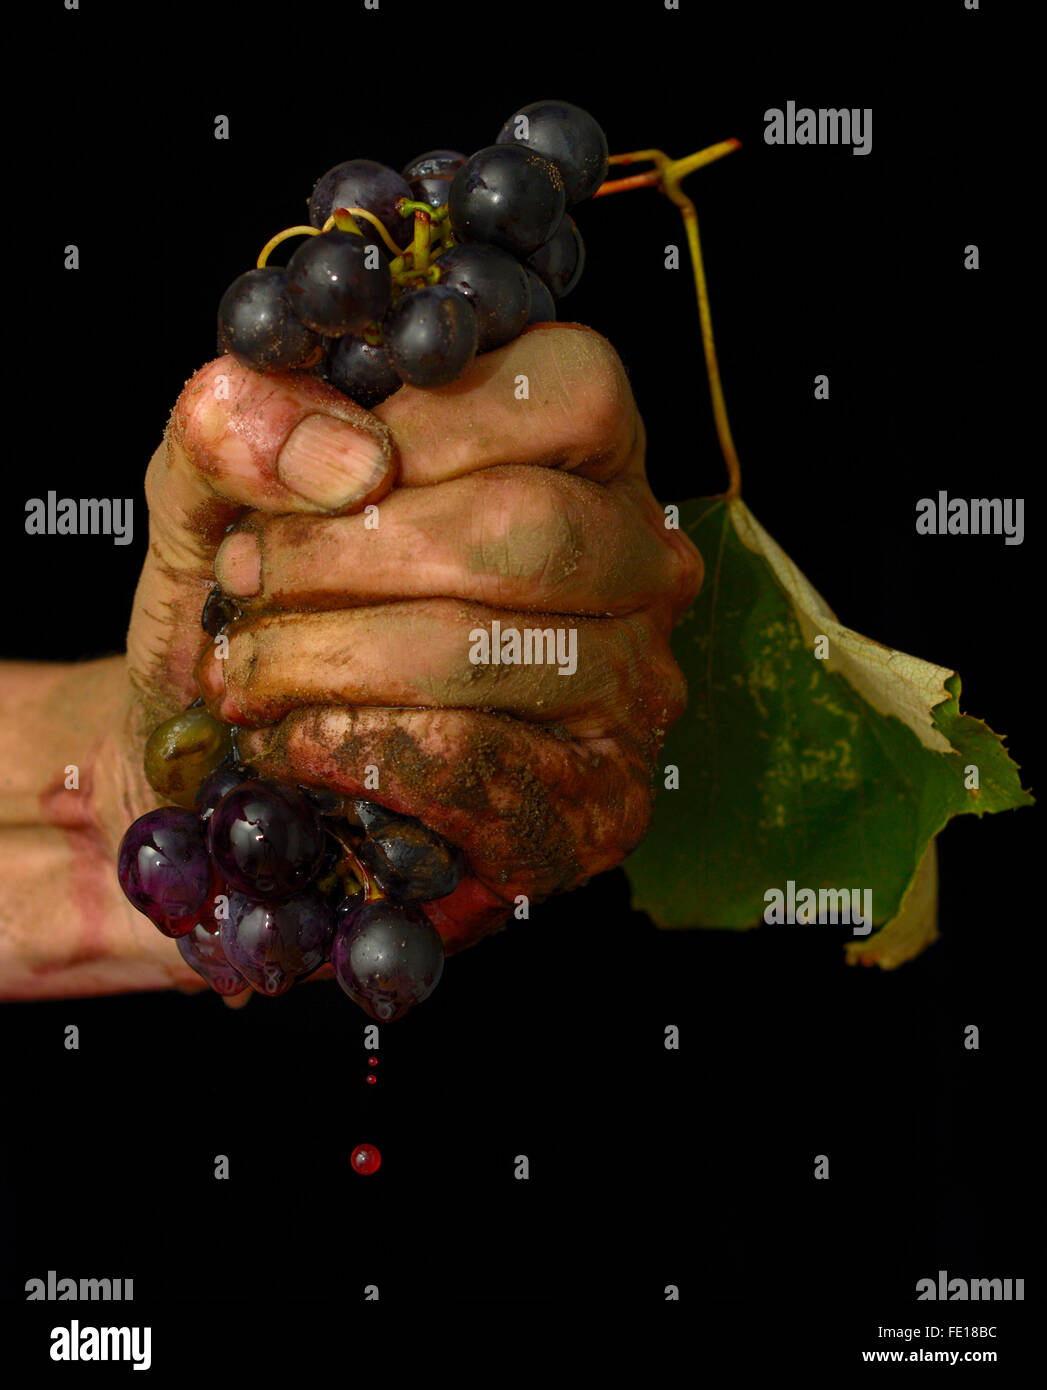 Dirty hand holding black grapes clenched in a fist squeezing against a black background colour - Stock Image